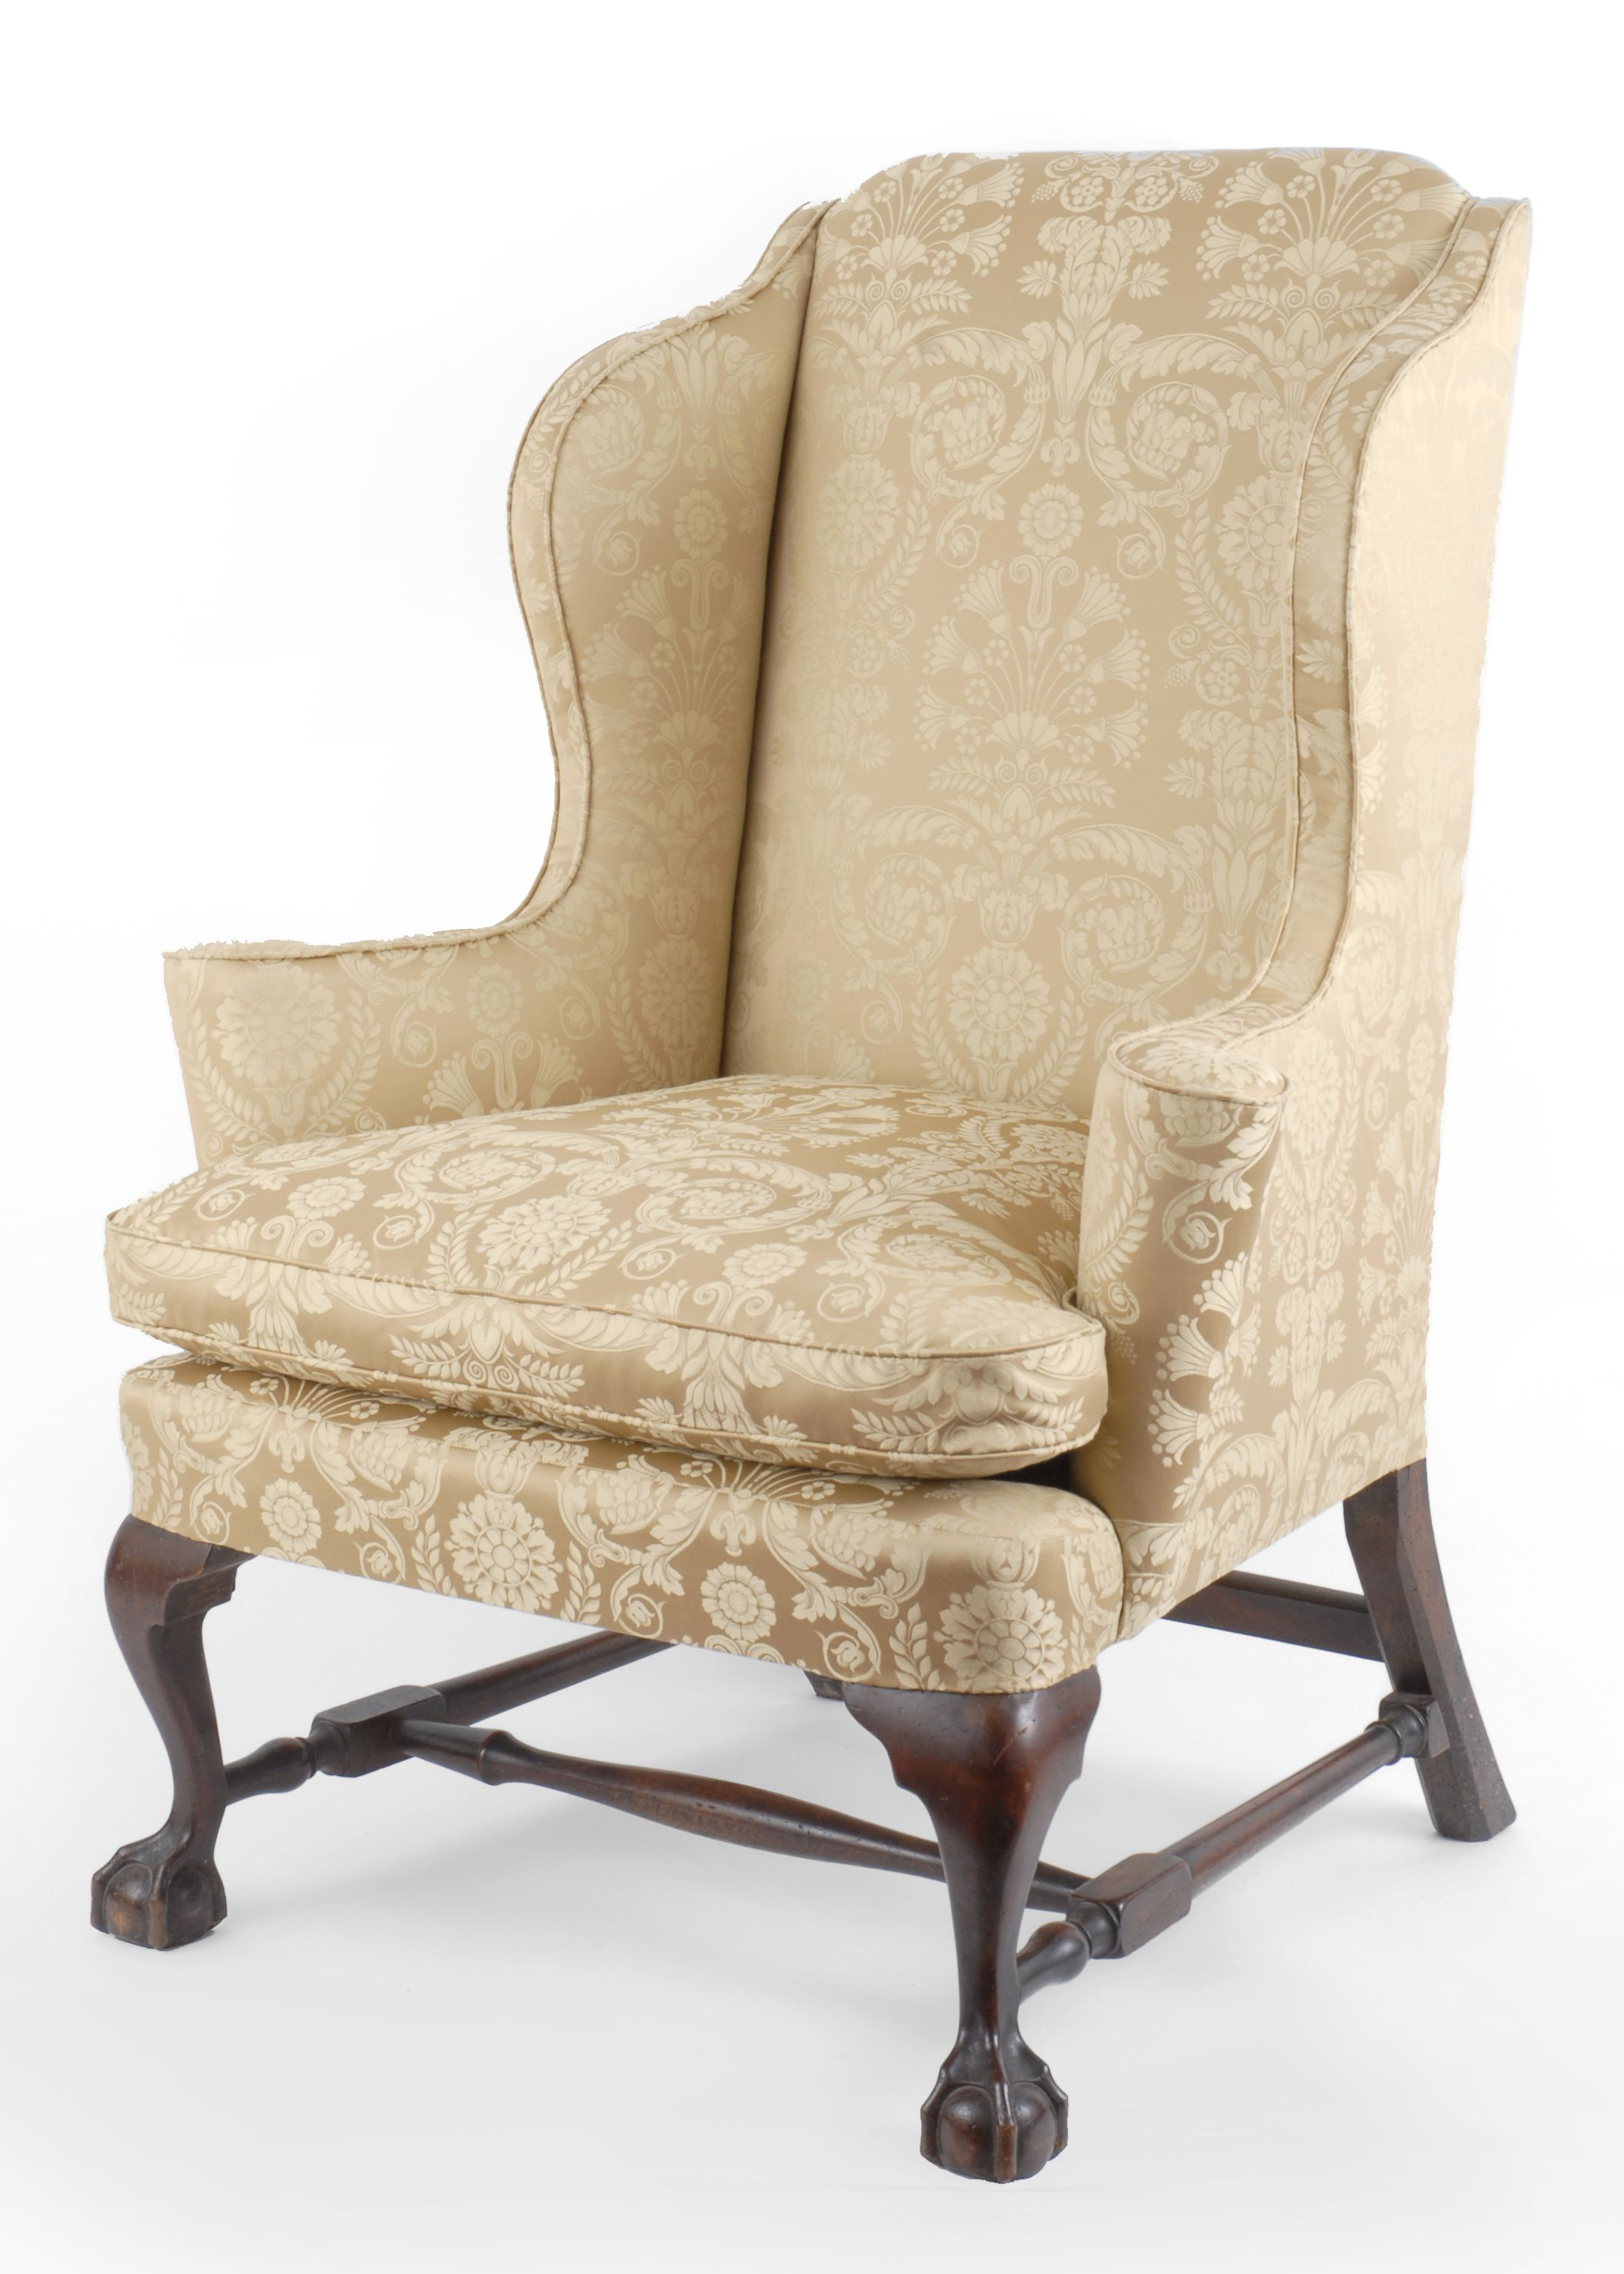 Antique wing chair - Antique Wingback Chair Google Search